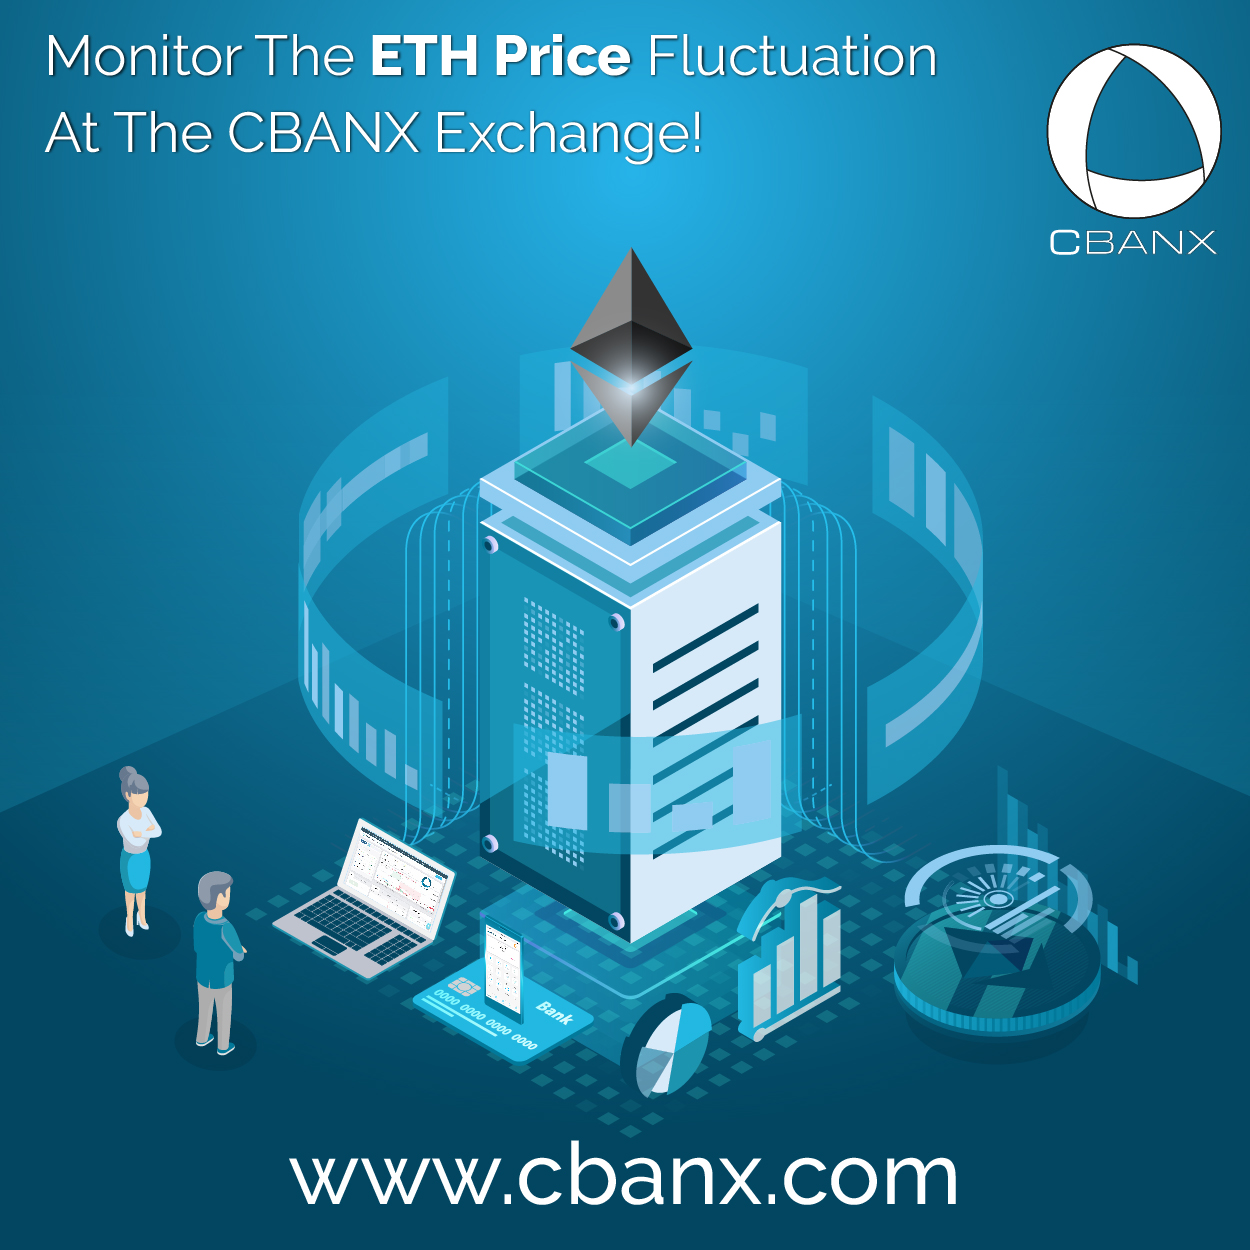 Monitor The ETH Price Fluctuation At The CBANX Exchange!